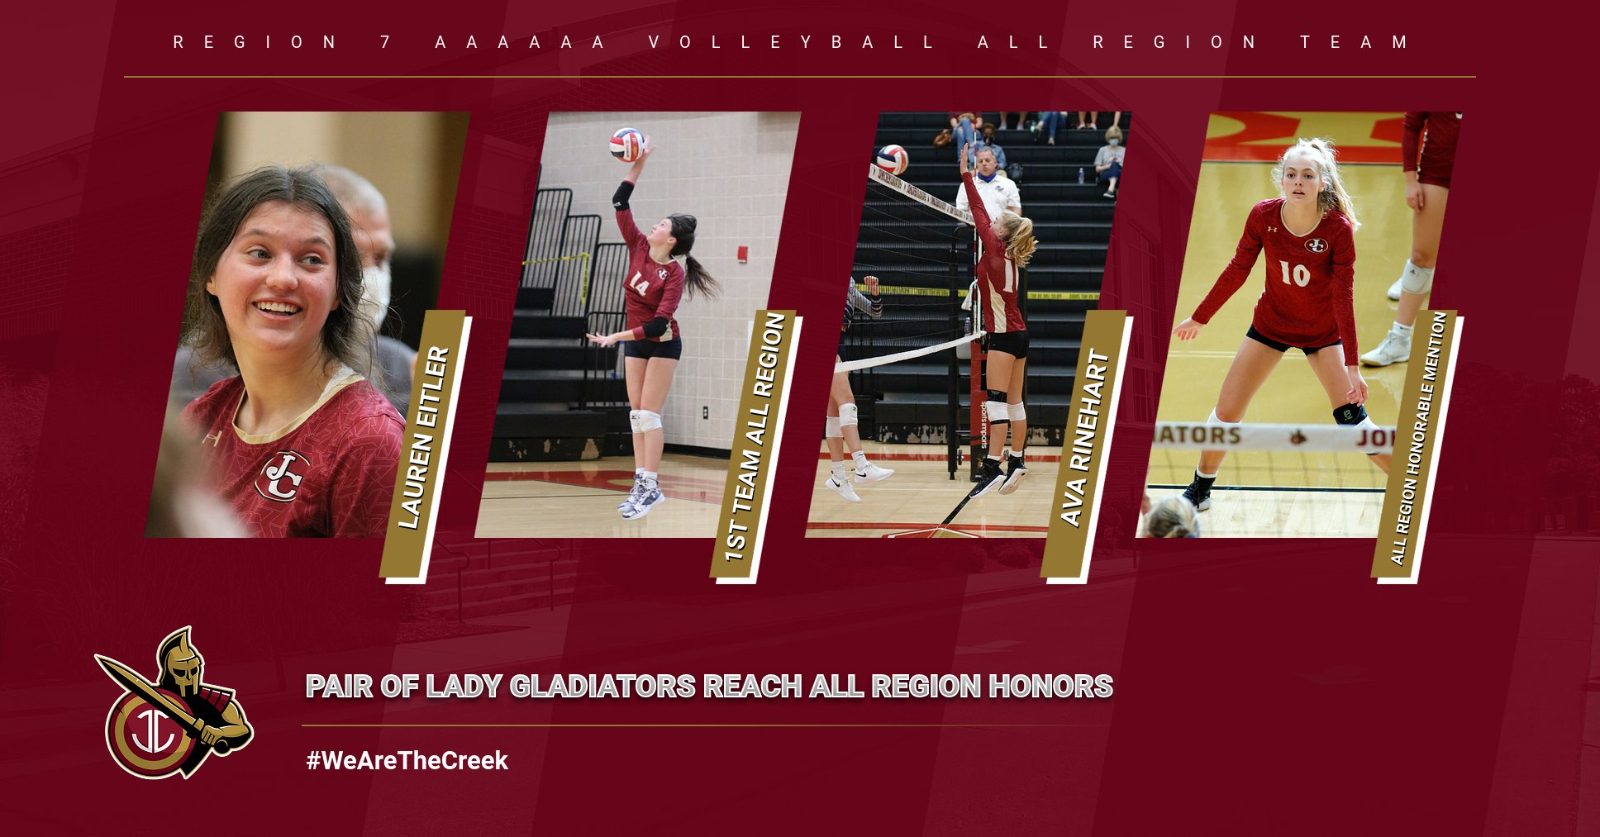 Pair of Lady Gladiators named to All Region Volleyball Team